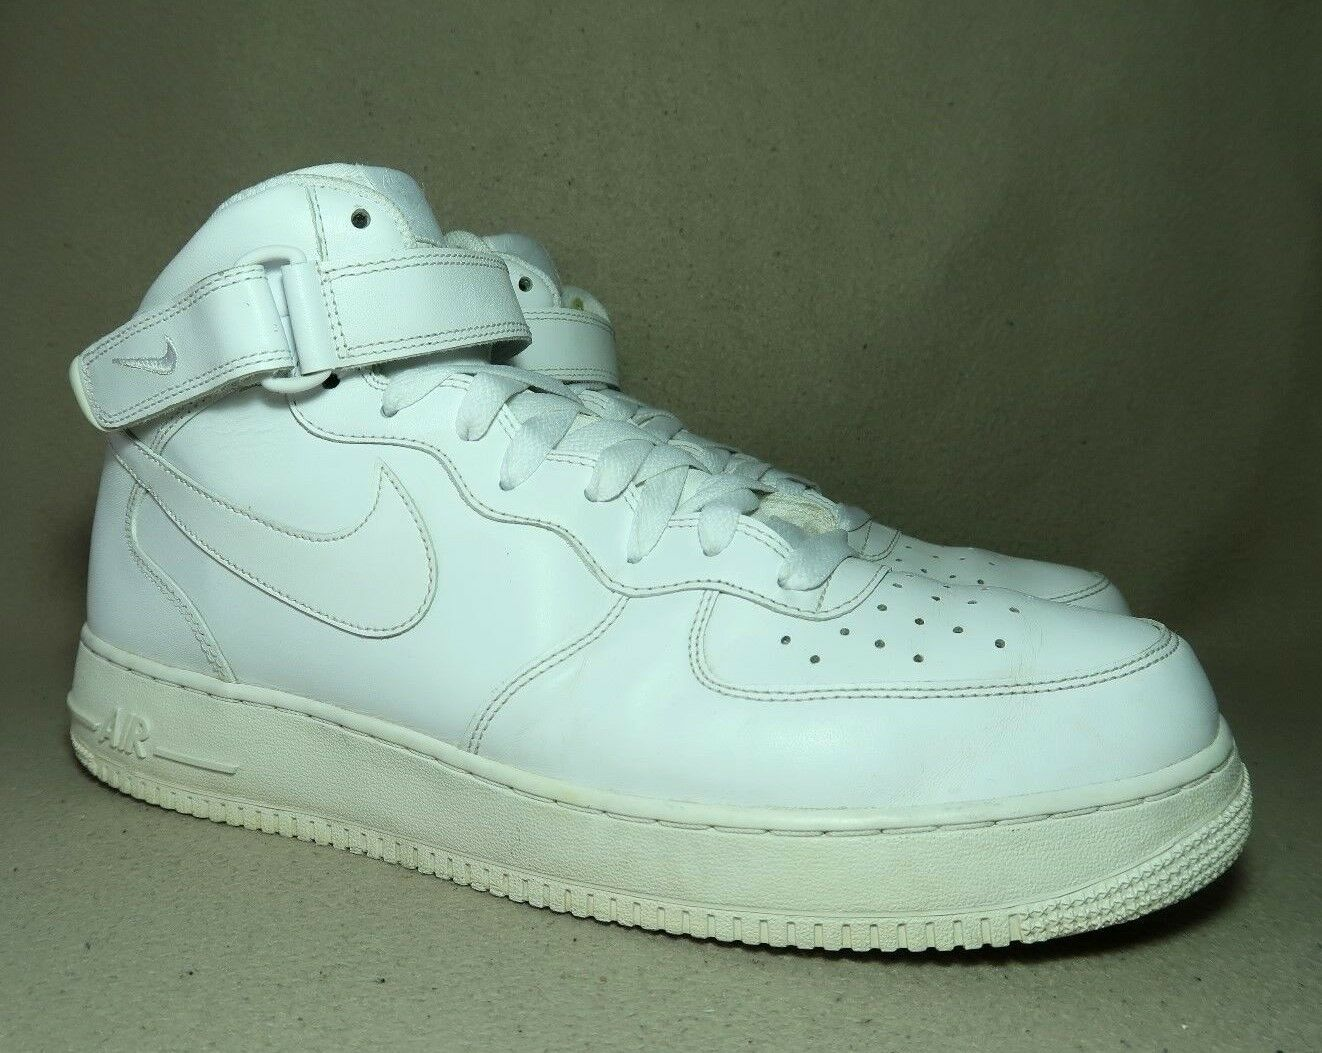 NIKE AIR Obliger 1 MID Leather '07 homme Triple blanc Leather MID Trainers13/EU 48.5 b67356